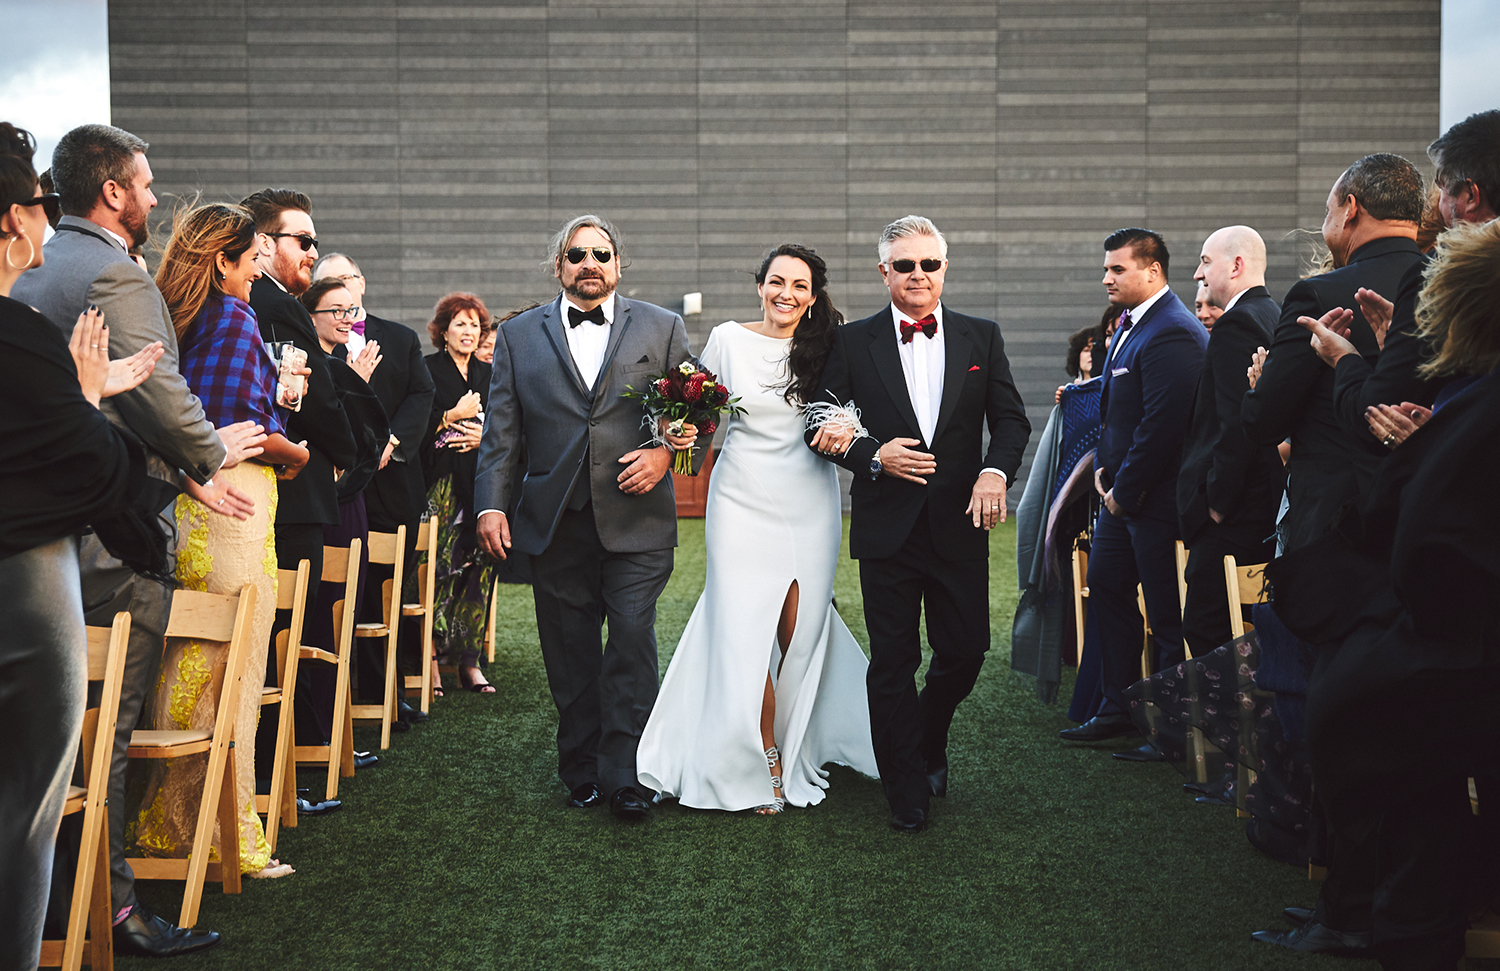 170930_WilliamValeWeddingPhotography_BrooklynWeddingPhotographer_By_BriJohnsonWeddings_0115.jpg